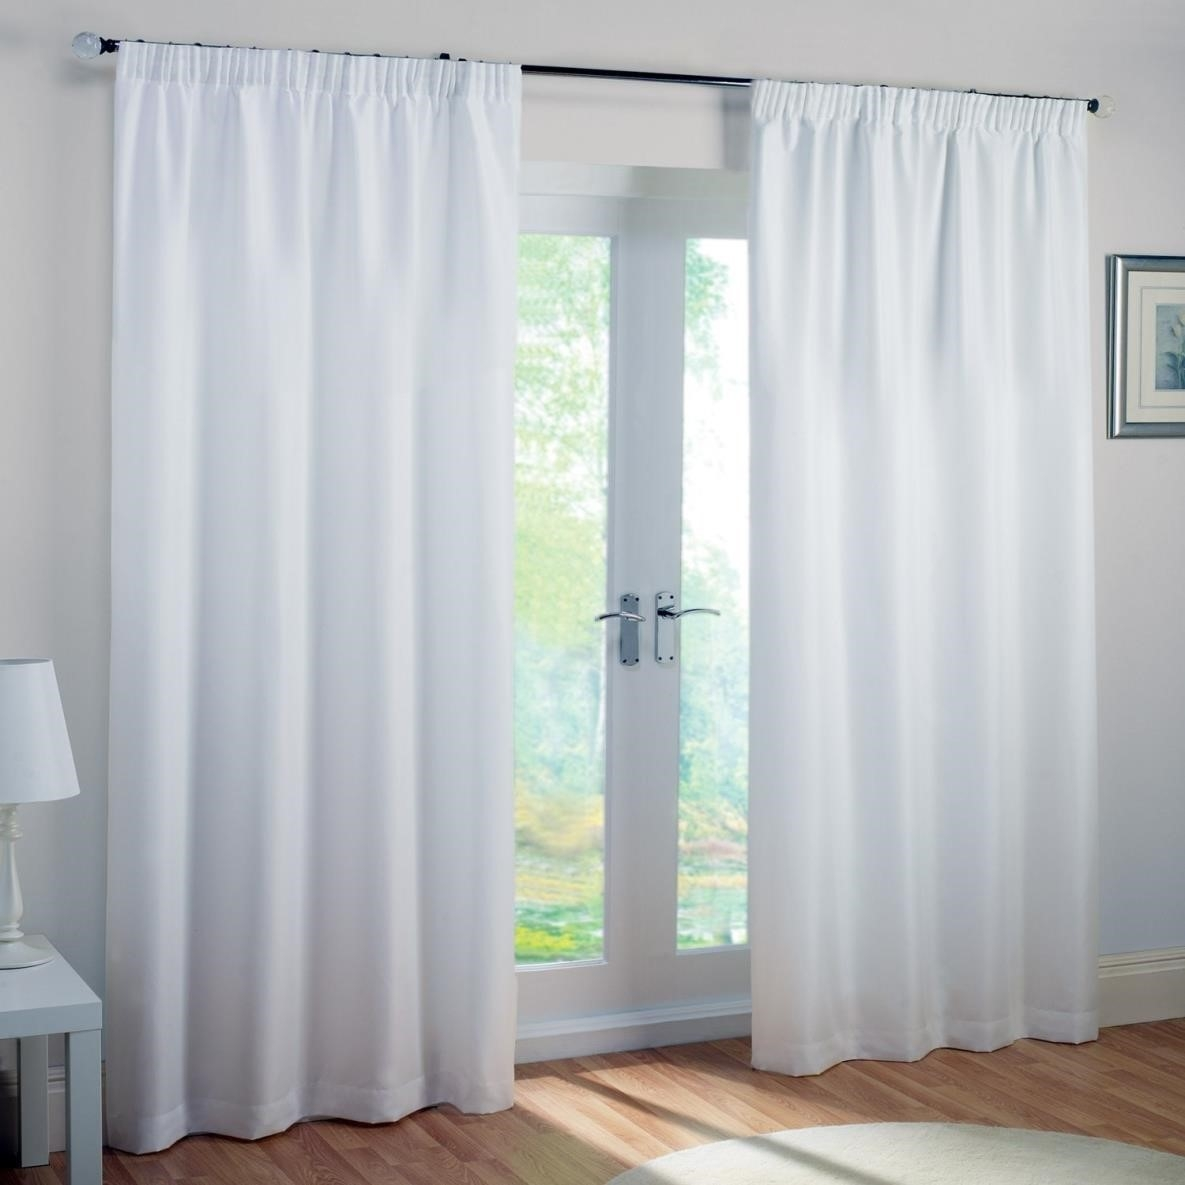 Curtains Curtain Online On Targetcom Find At Target Shop White Throughout White Opaque Curtains (Image 1 of 15)